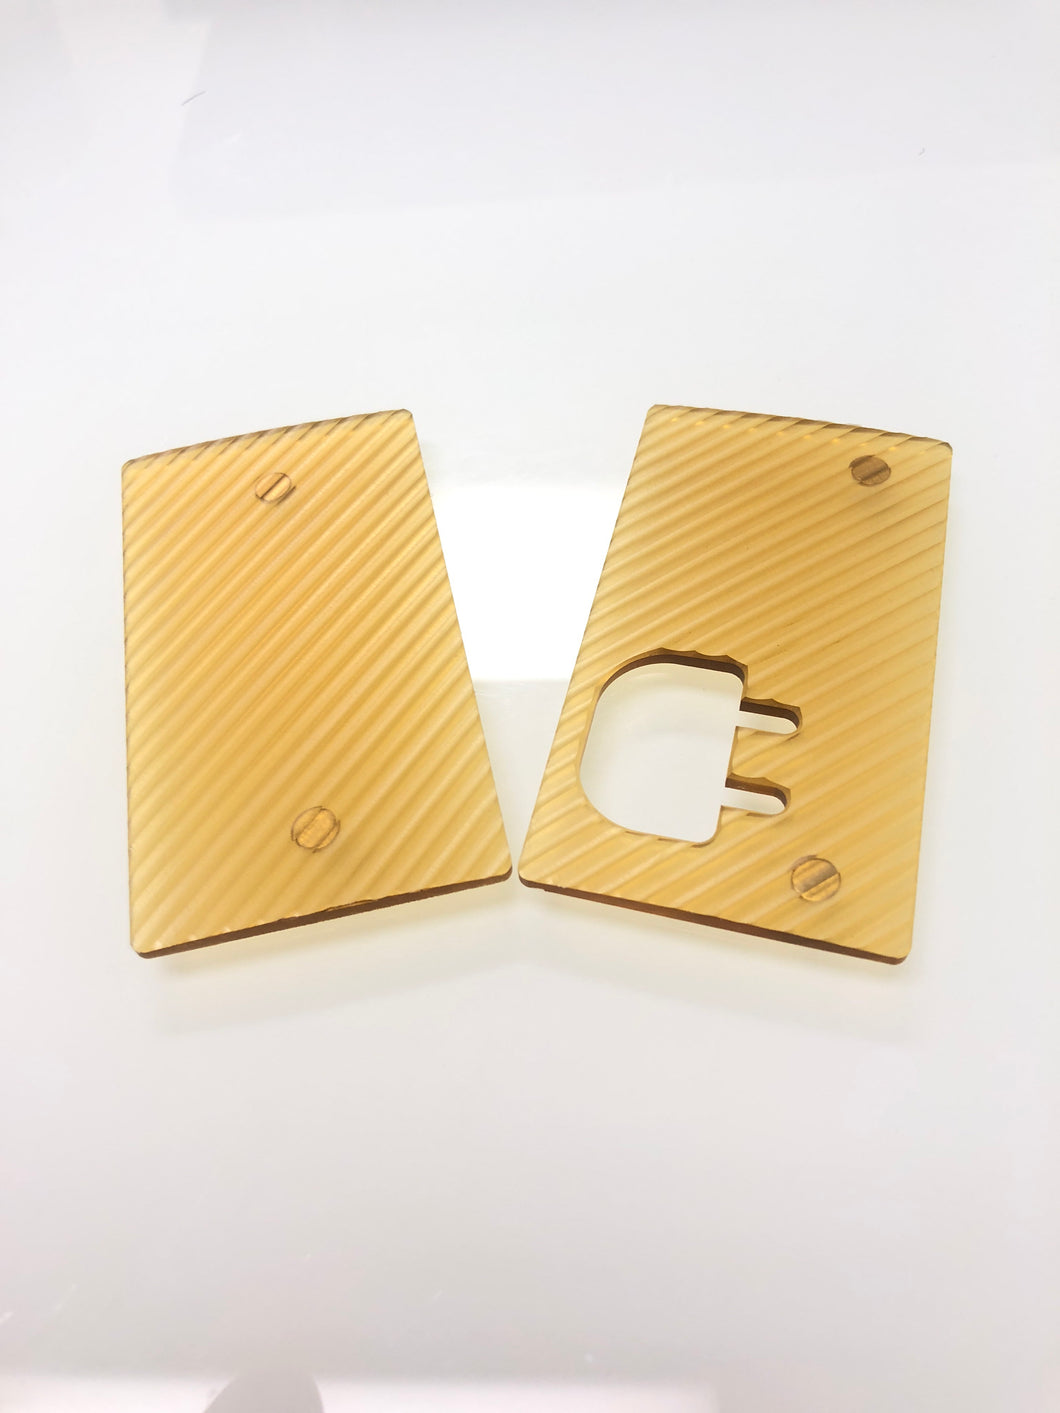 Ultem grippy doors for the plug